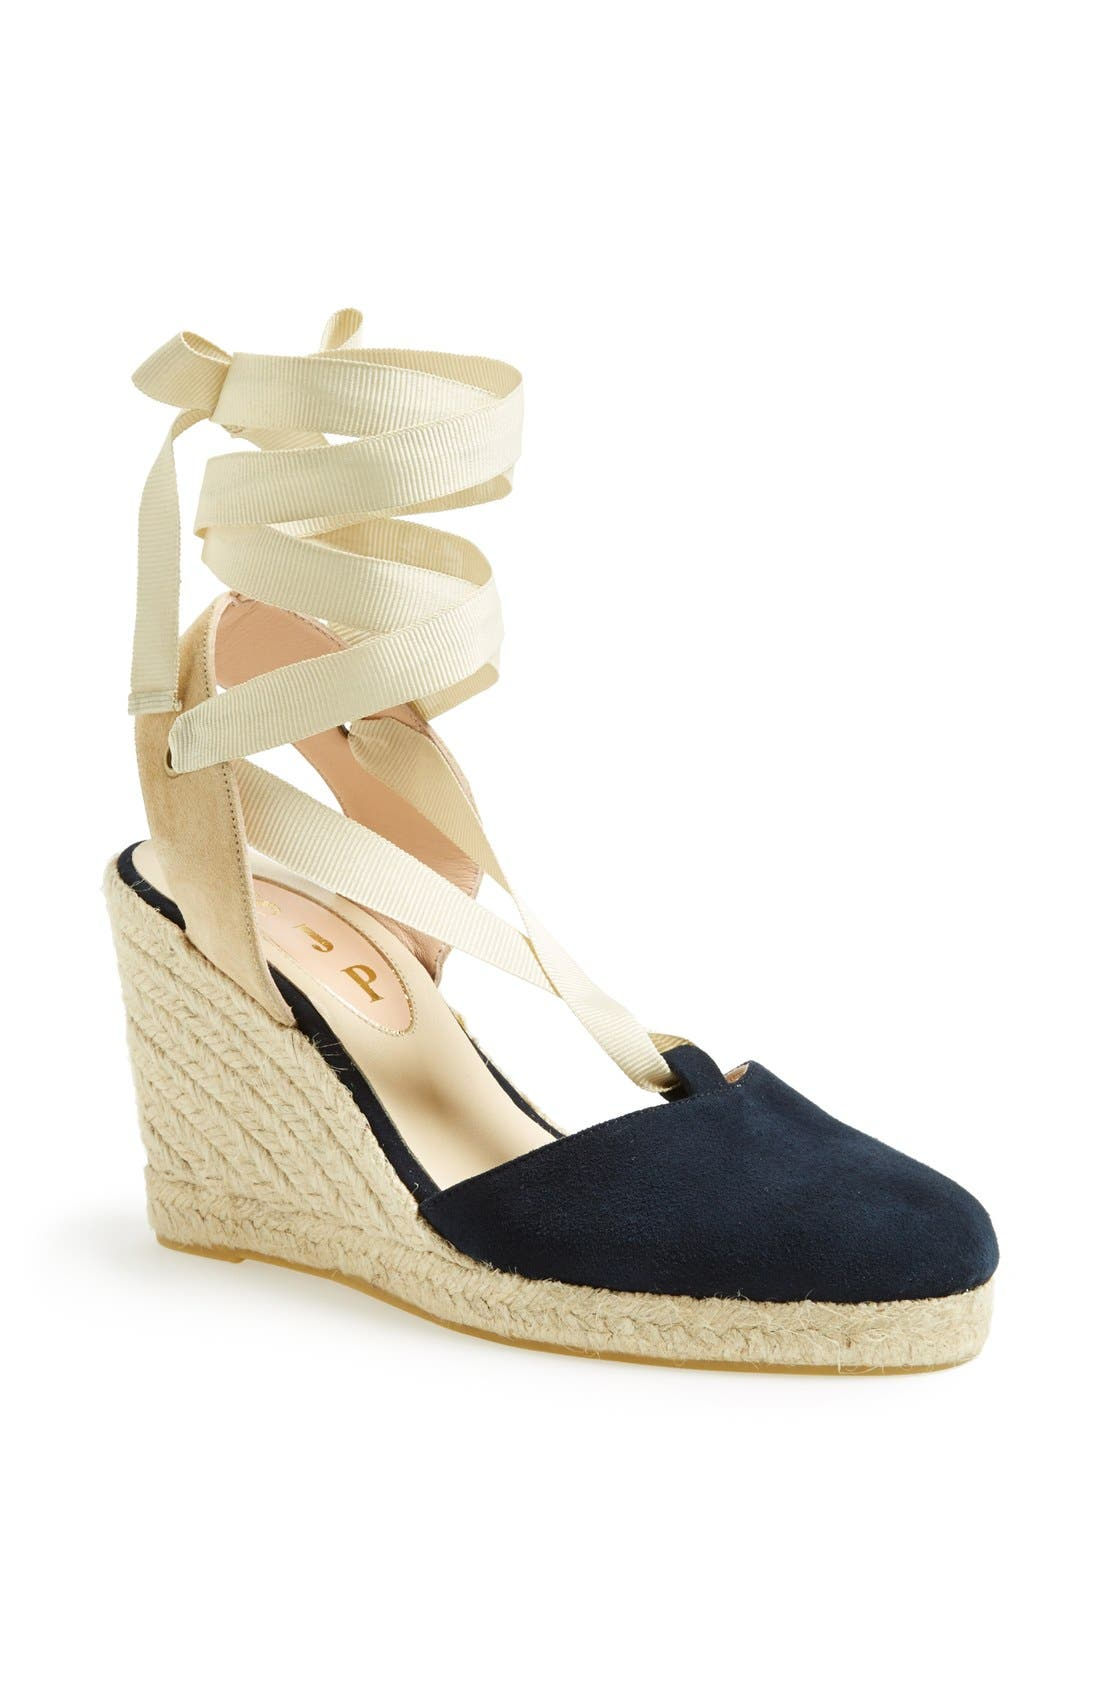 Alternate Image 1 Selected - SJP 'Inez' Wedge Espadrille (Nordstrom Exclusive)